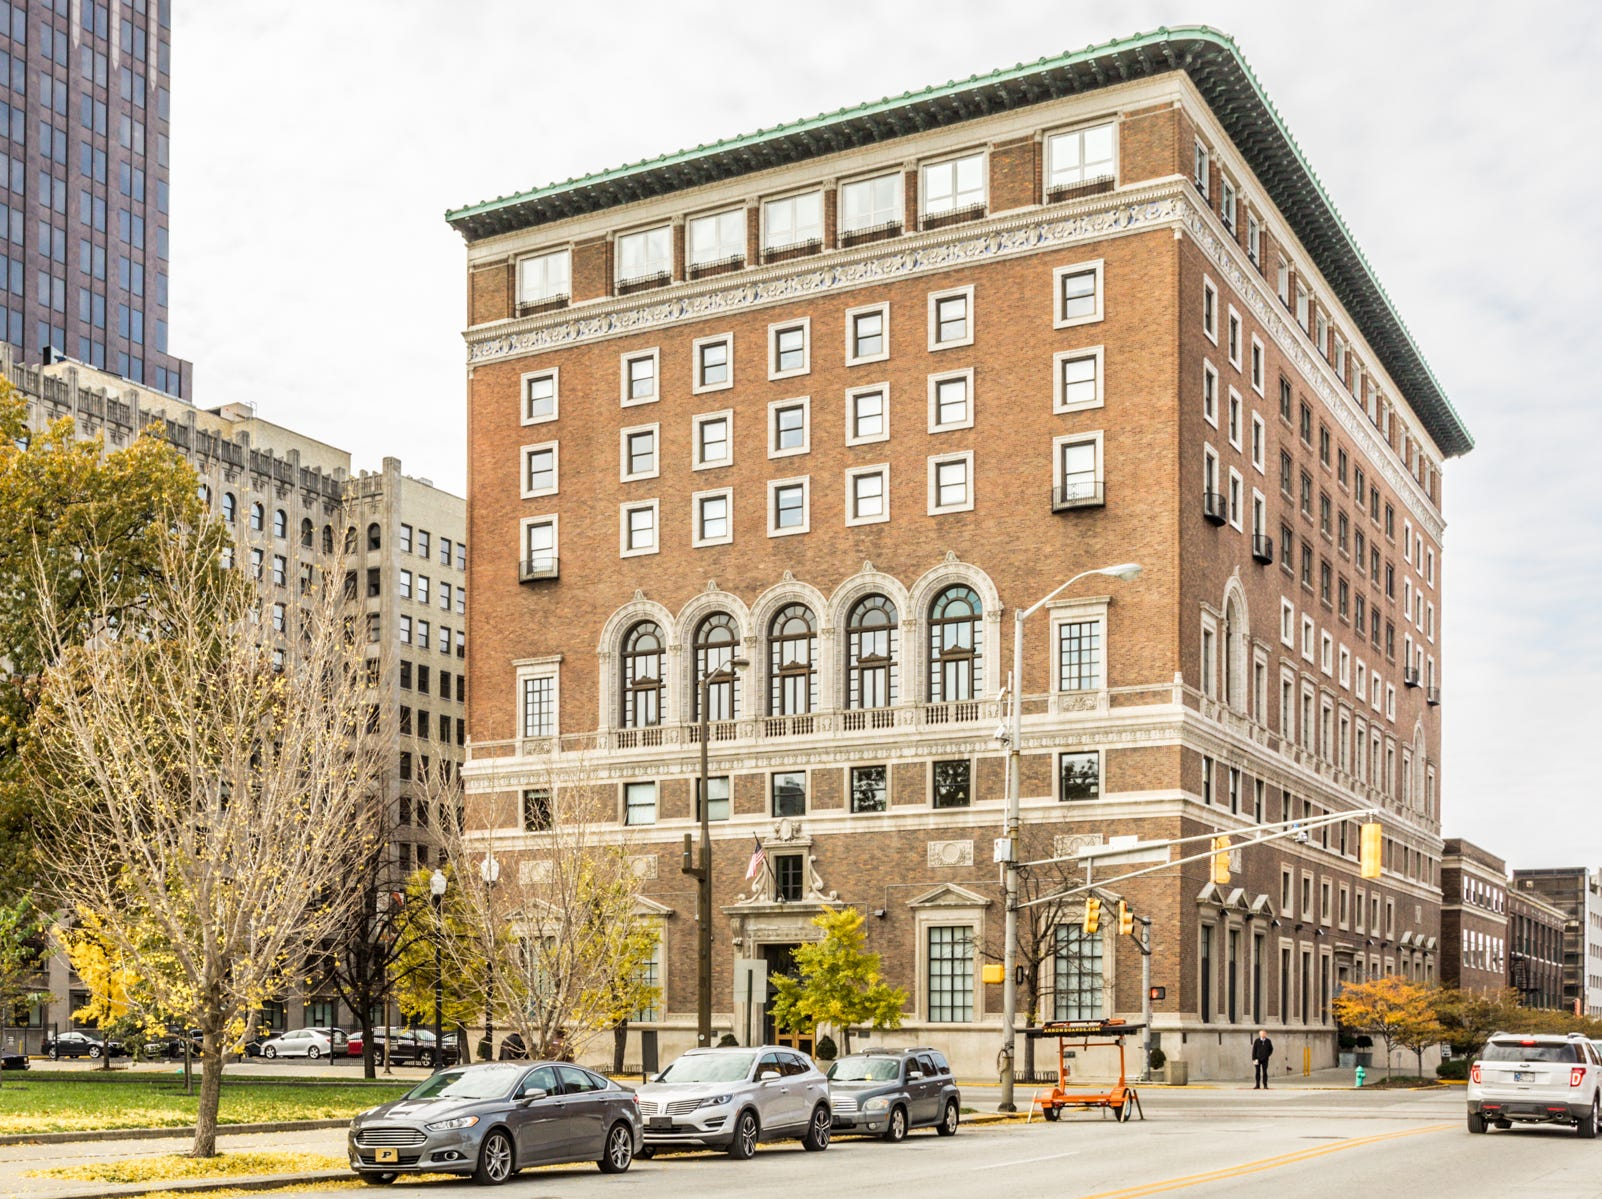 Originally home to the Indianapolis Athletic Club, the building was turned into condos about a decade ago.